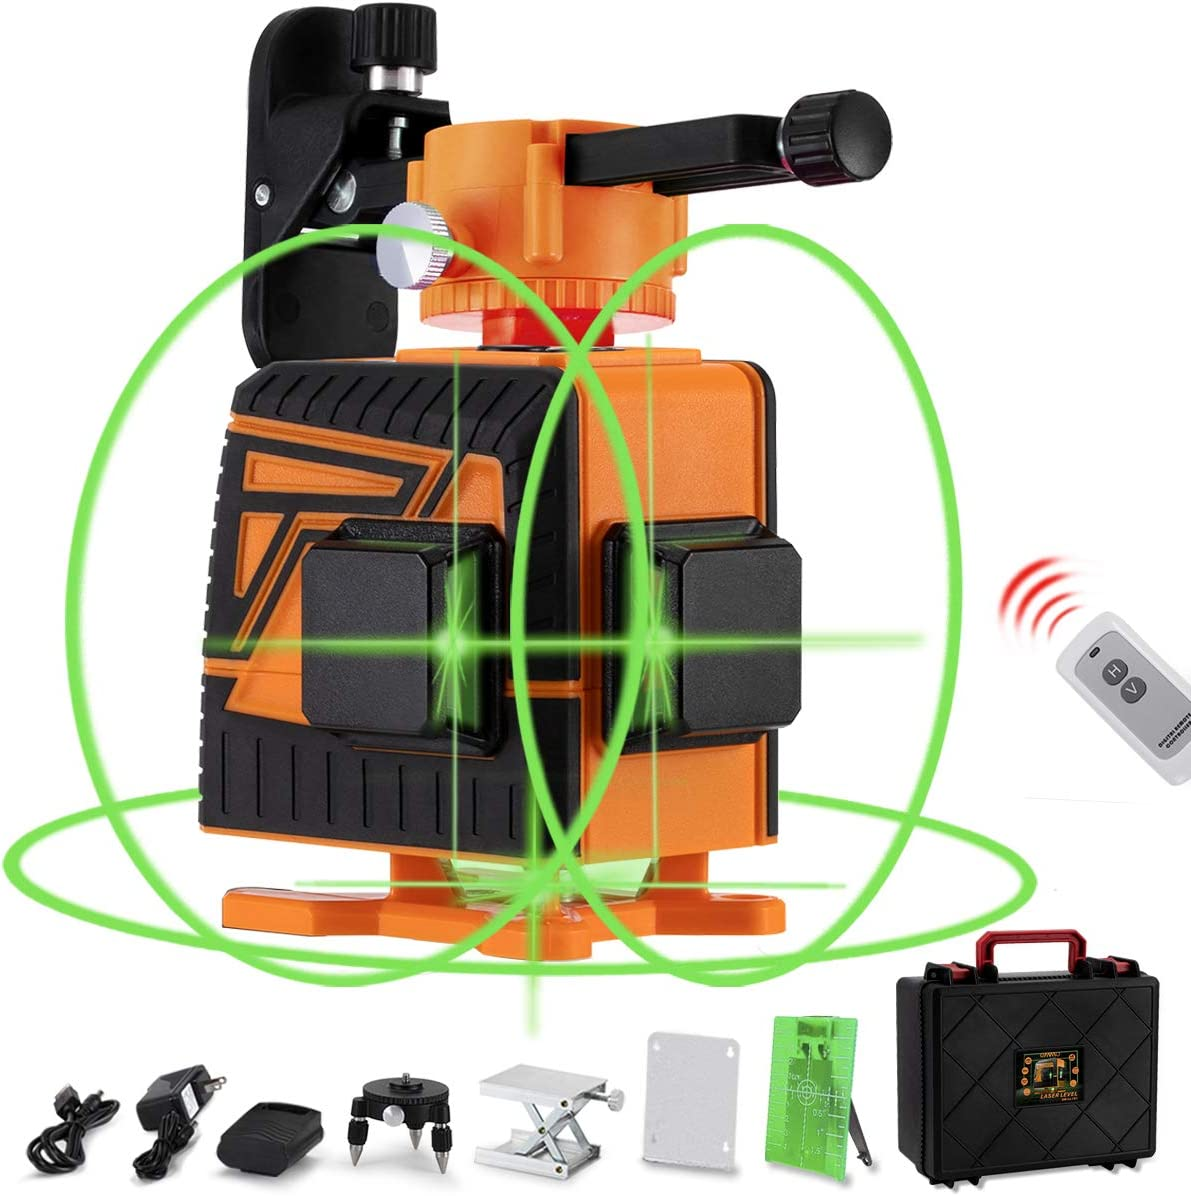 [QMVU_8575]  OMMO Laser Level, Self-Leveling 360° Cross Line Laser Level, 12 Lines Green Laser  level with Pulse Mode, Horizontal and Vertical 132ft Green Beam Laser Tool  Kit, Remote Controller Included - - Amazon.com | Laser Level 360 Wire Diagram |  | Amazon.com